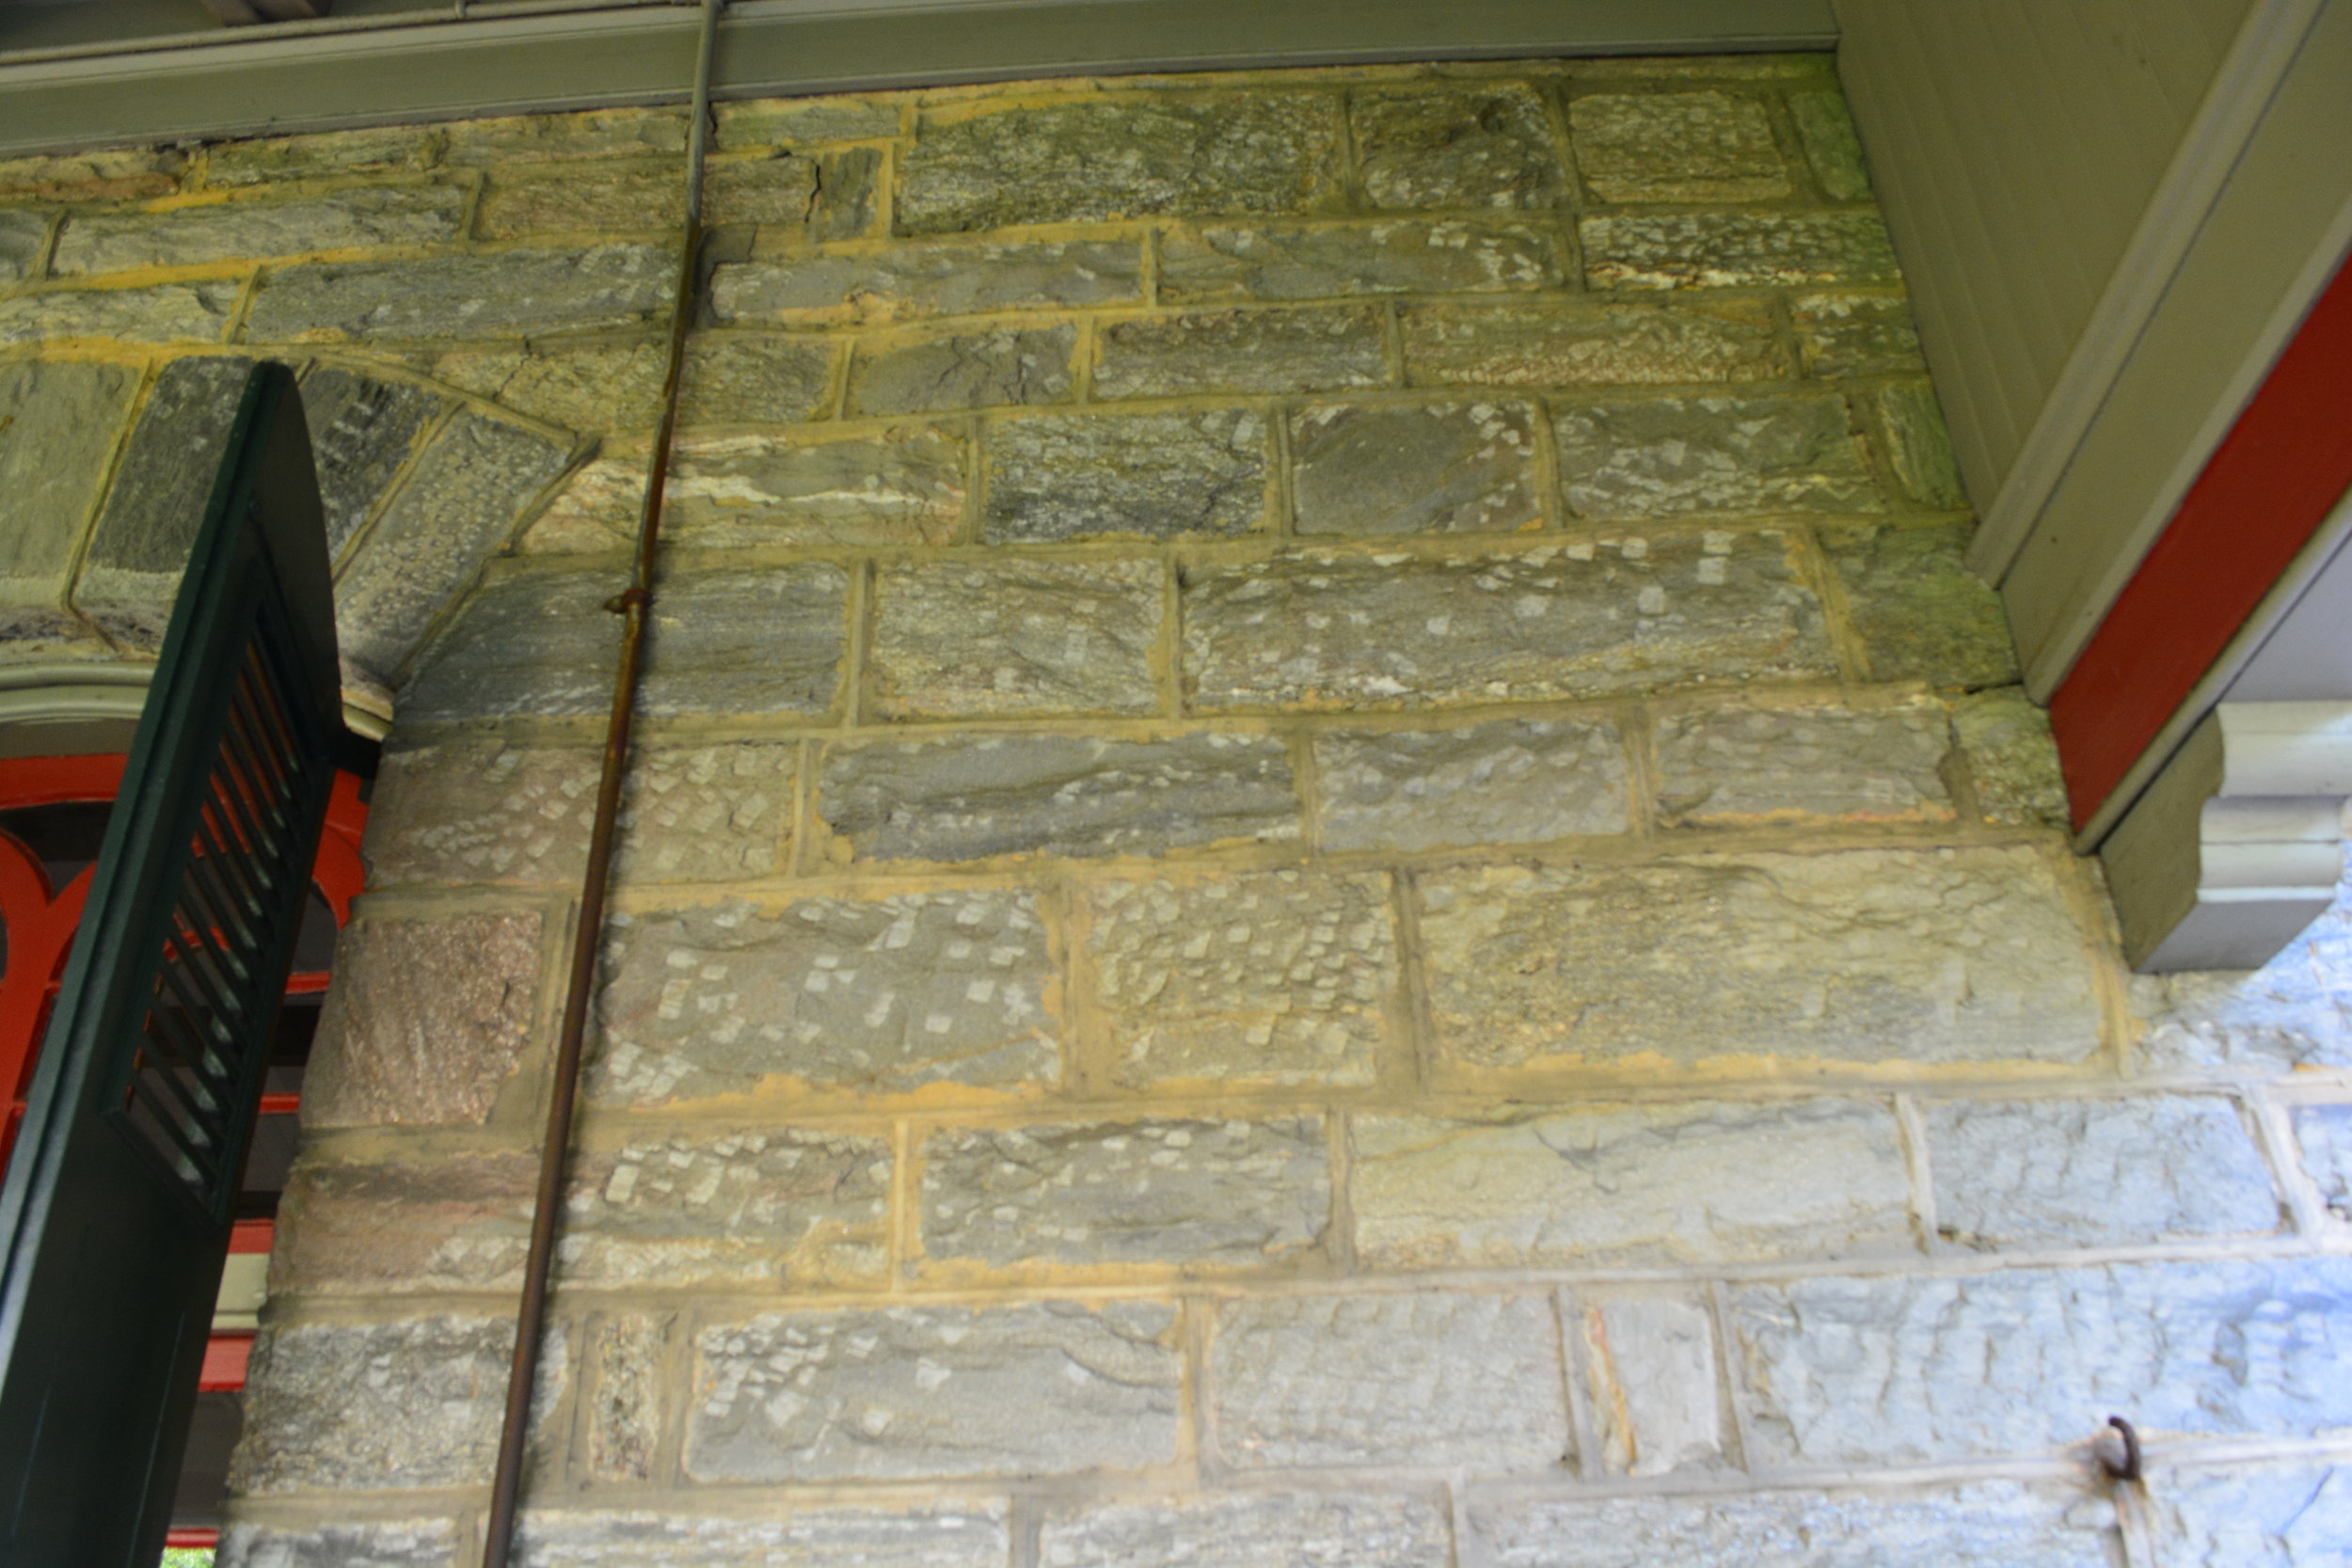 The chisel marks on the stone exterior have been protected by the porch awning for almost a hundred and twenty years.